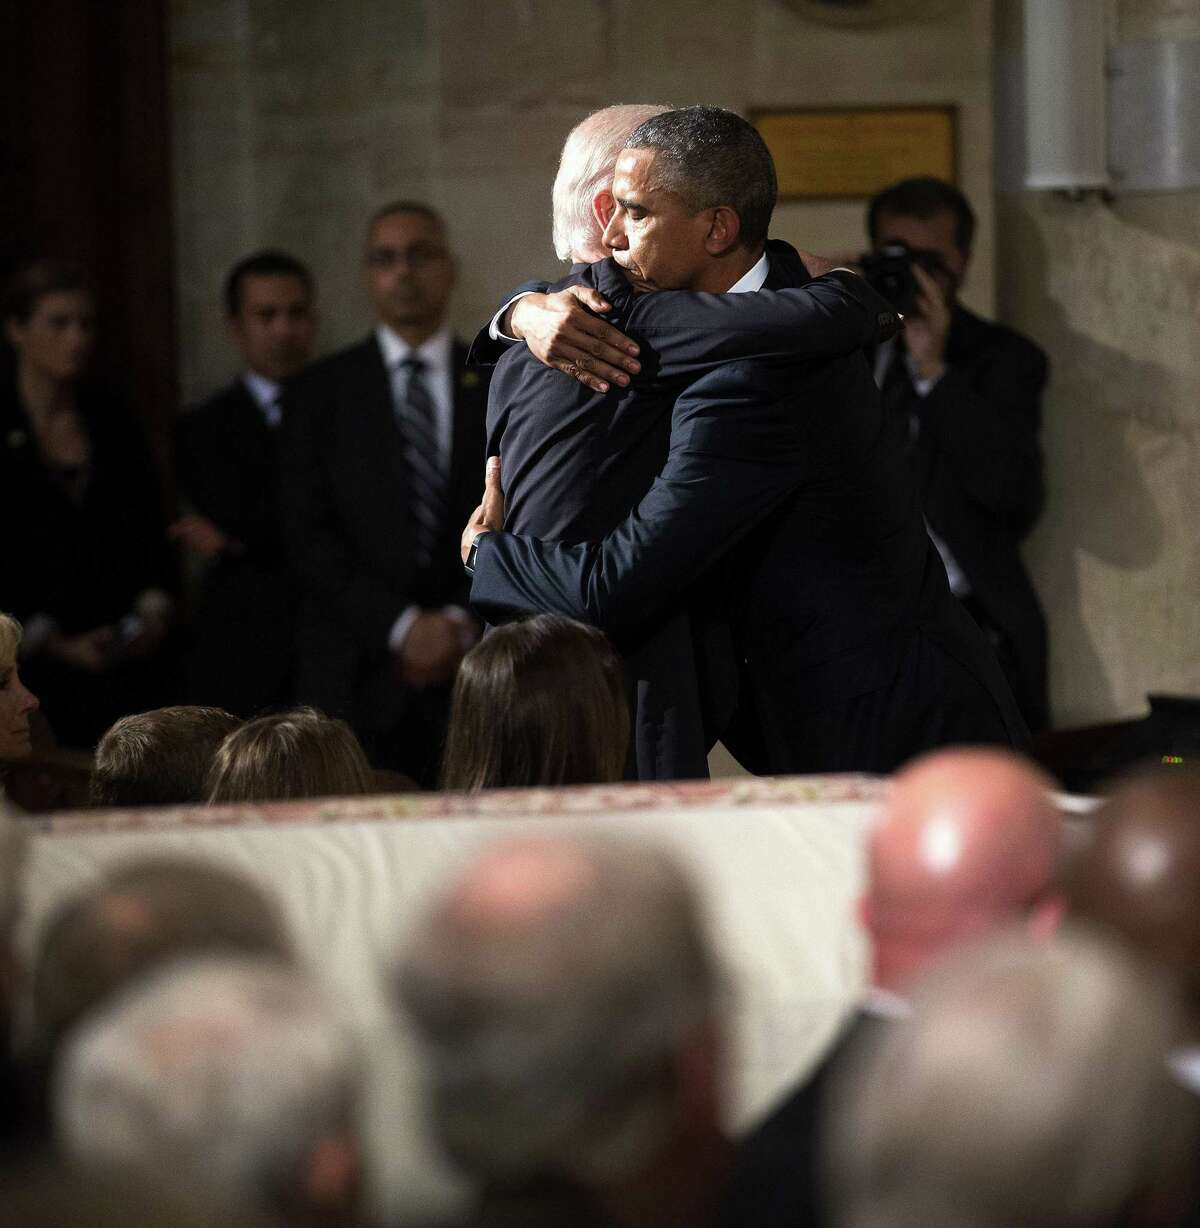 President Obama hugs Vice President Joe Biden during the funeral services for Biden's son, Beau Biden, Saturday, June 6, 2015, at the St. Anthony of Padua Church in Wilmington, Del. (Doug Mills/The New York Times Times via AP, Pool)